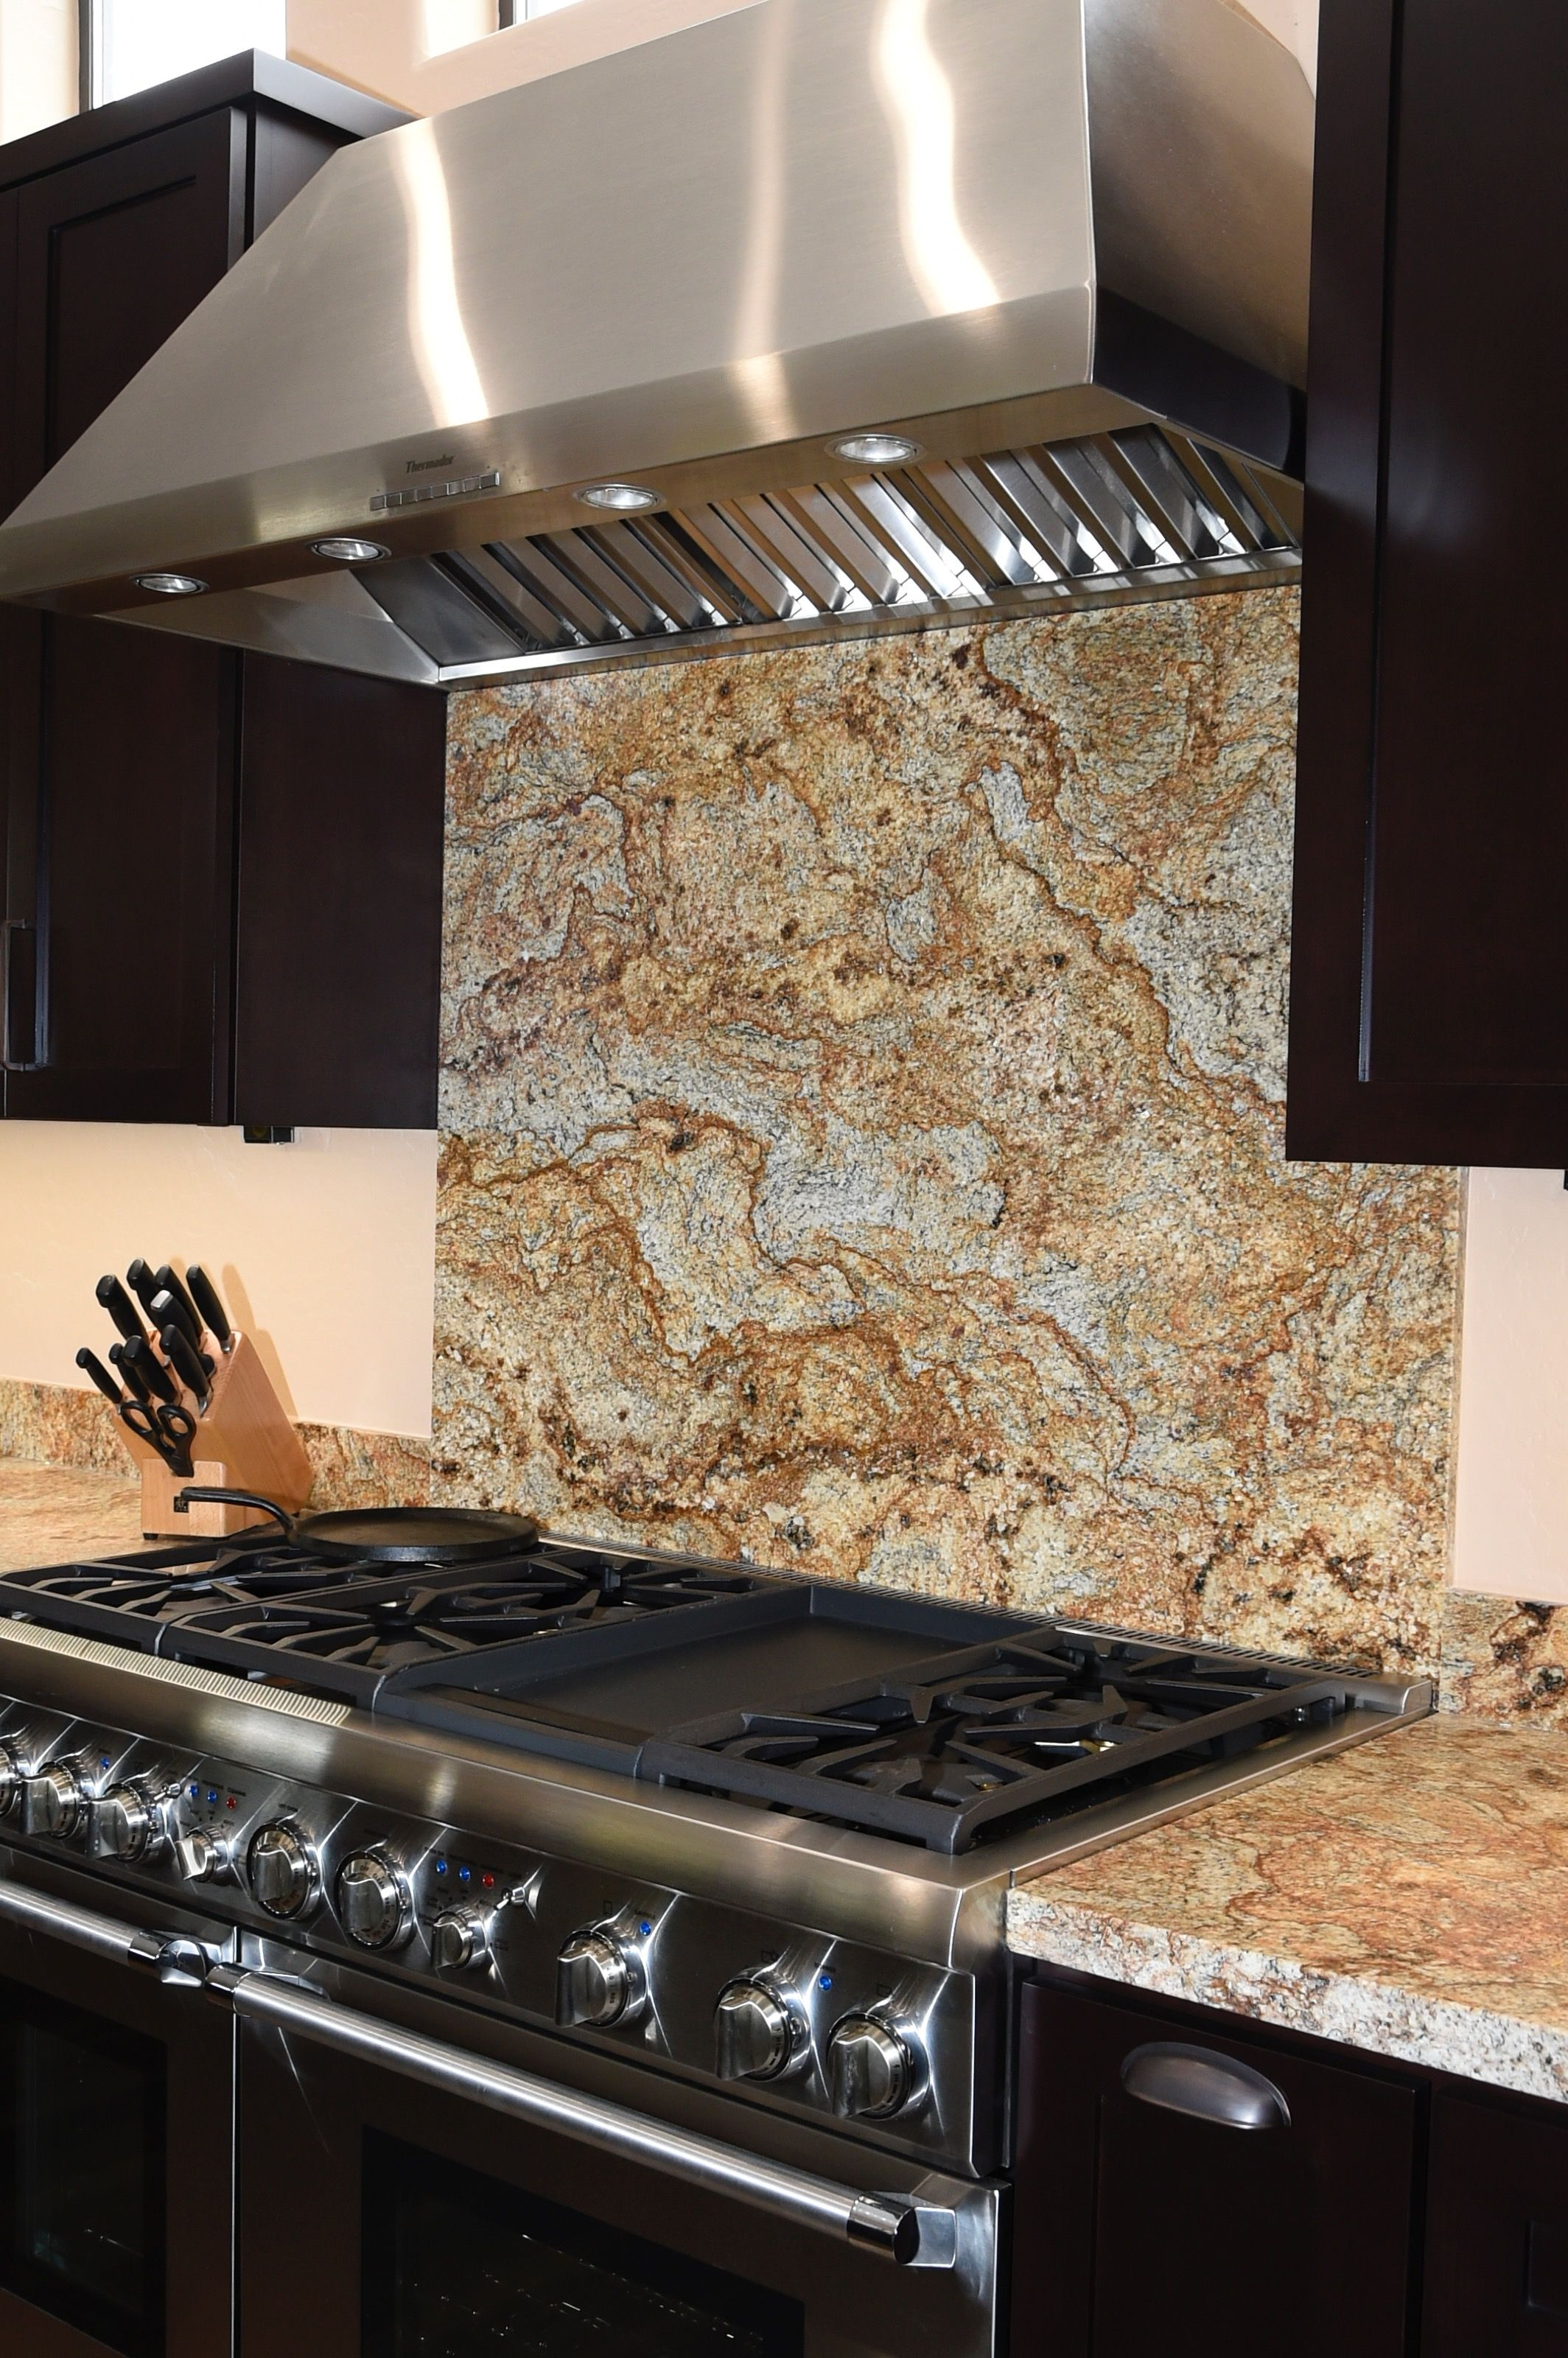 - Kitchen Remodel, Granite Backsplash, Commercial Range And Hood